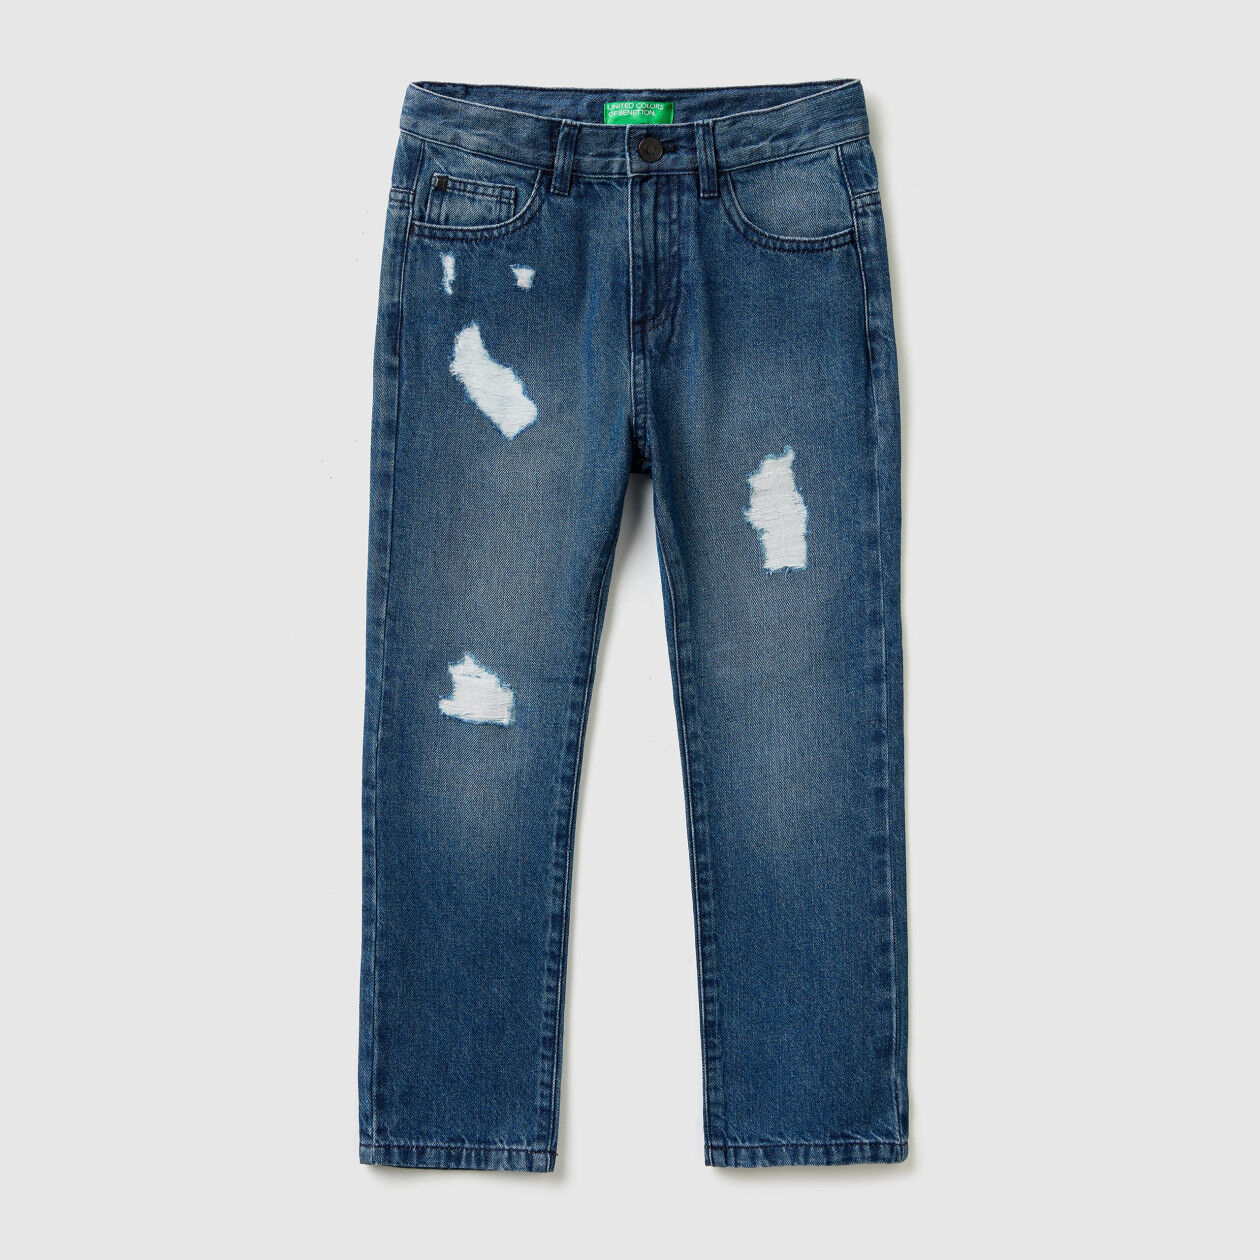 Straight leg jeans with tears